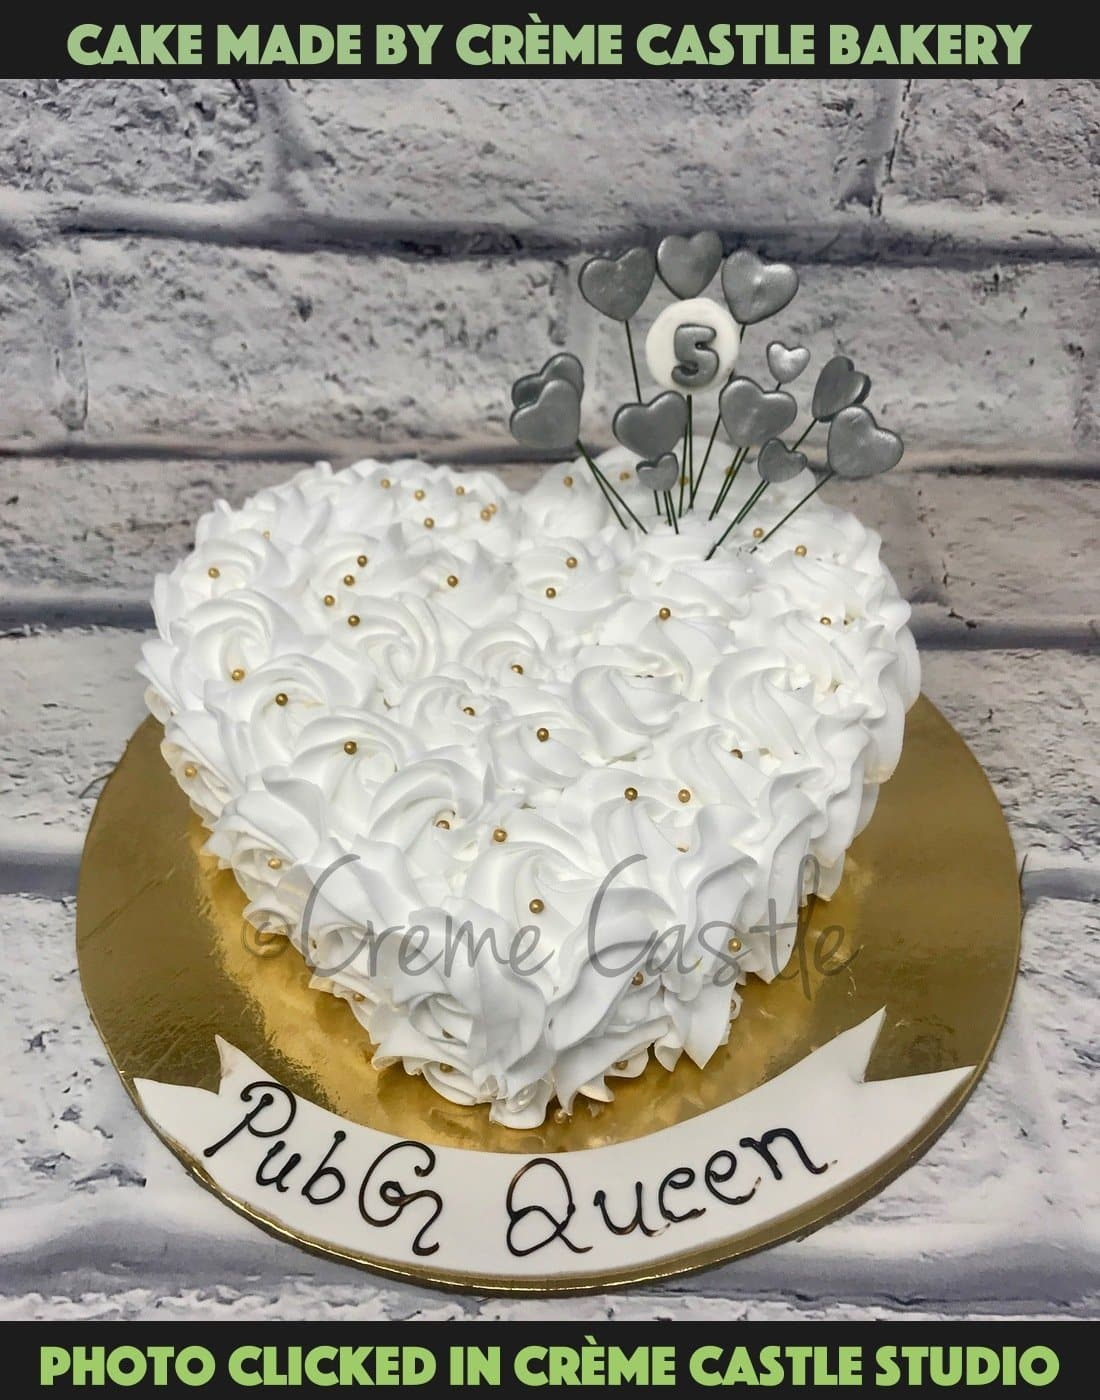 A heart shaped cake covered with white roses made from cream and silver hearts